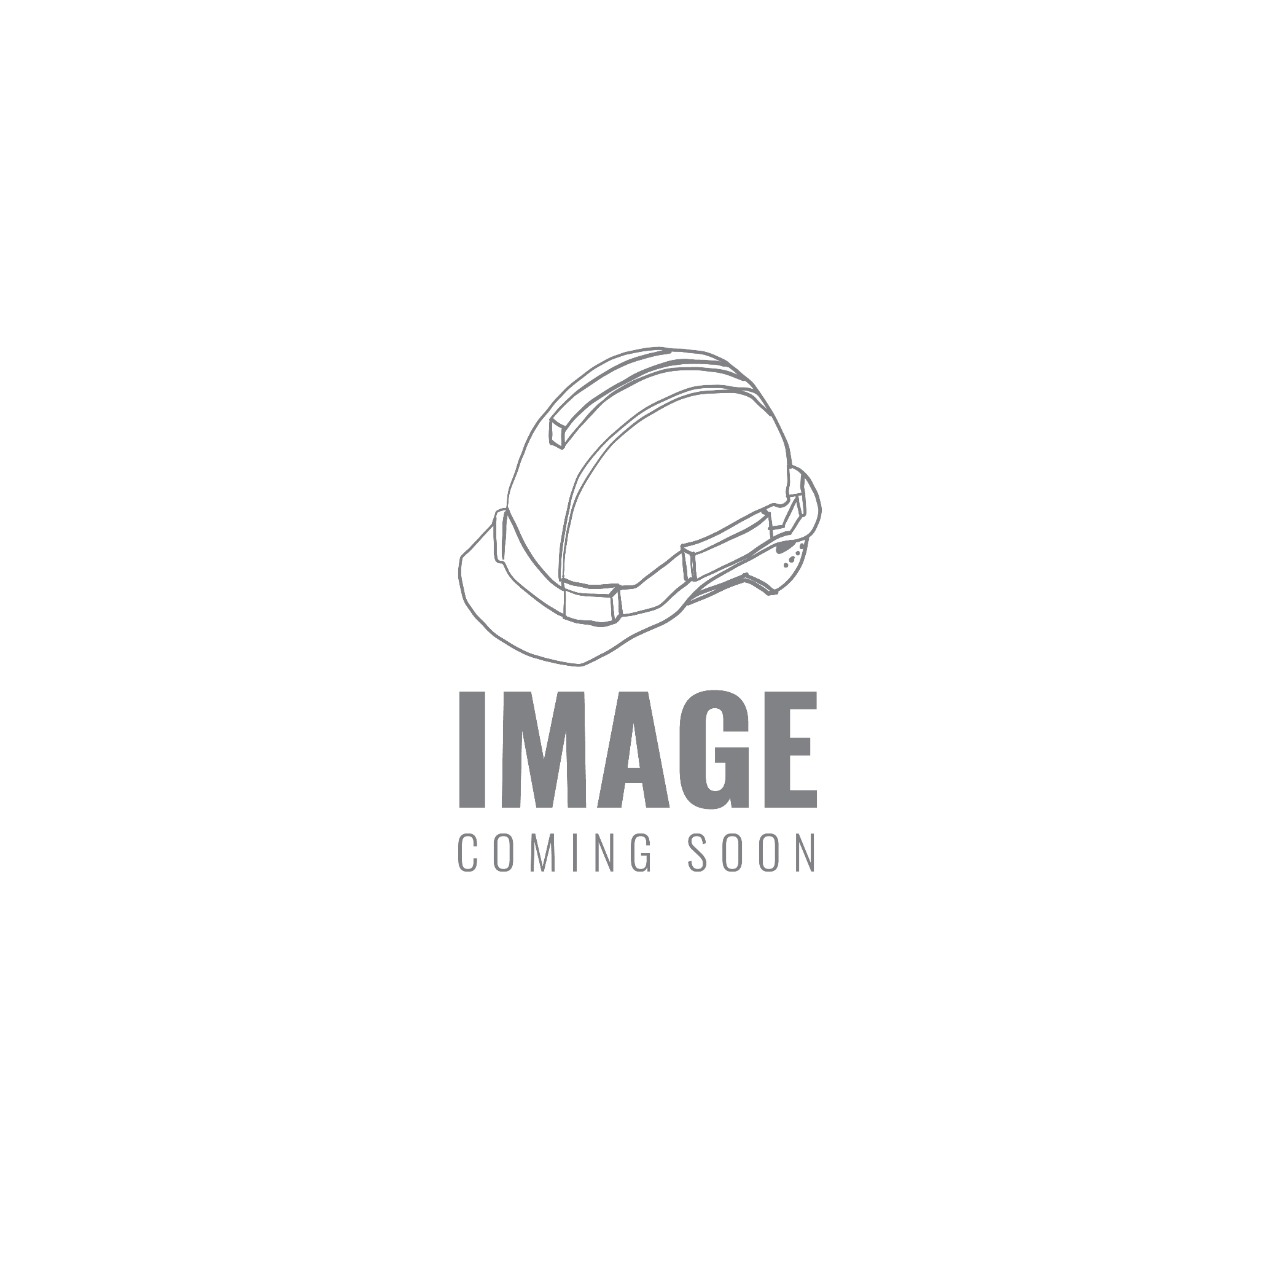 3M™ Disposable Protective Eyewear Lens, Cleaning Station